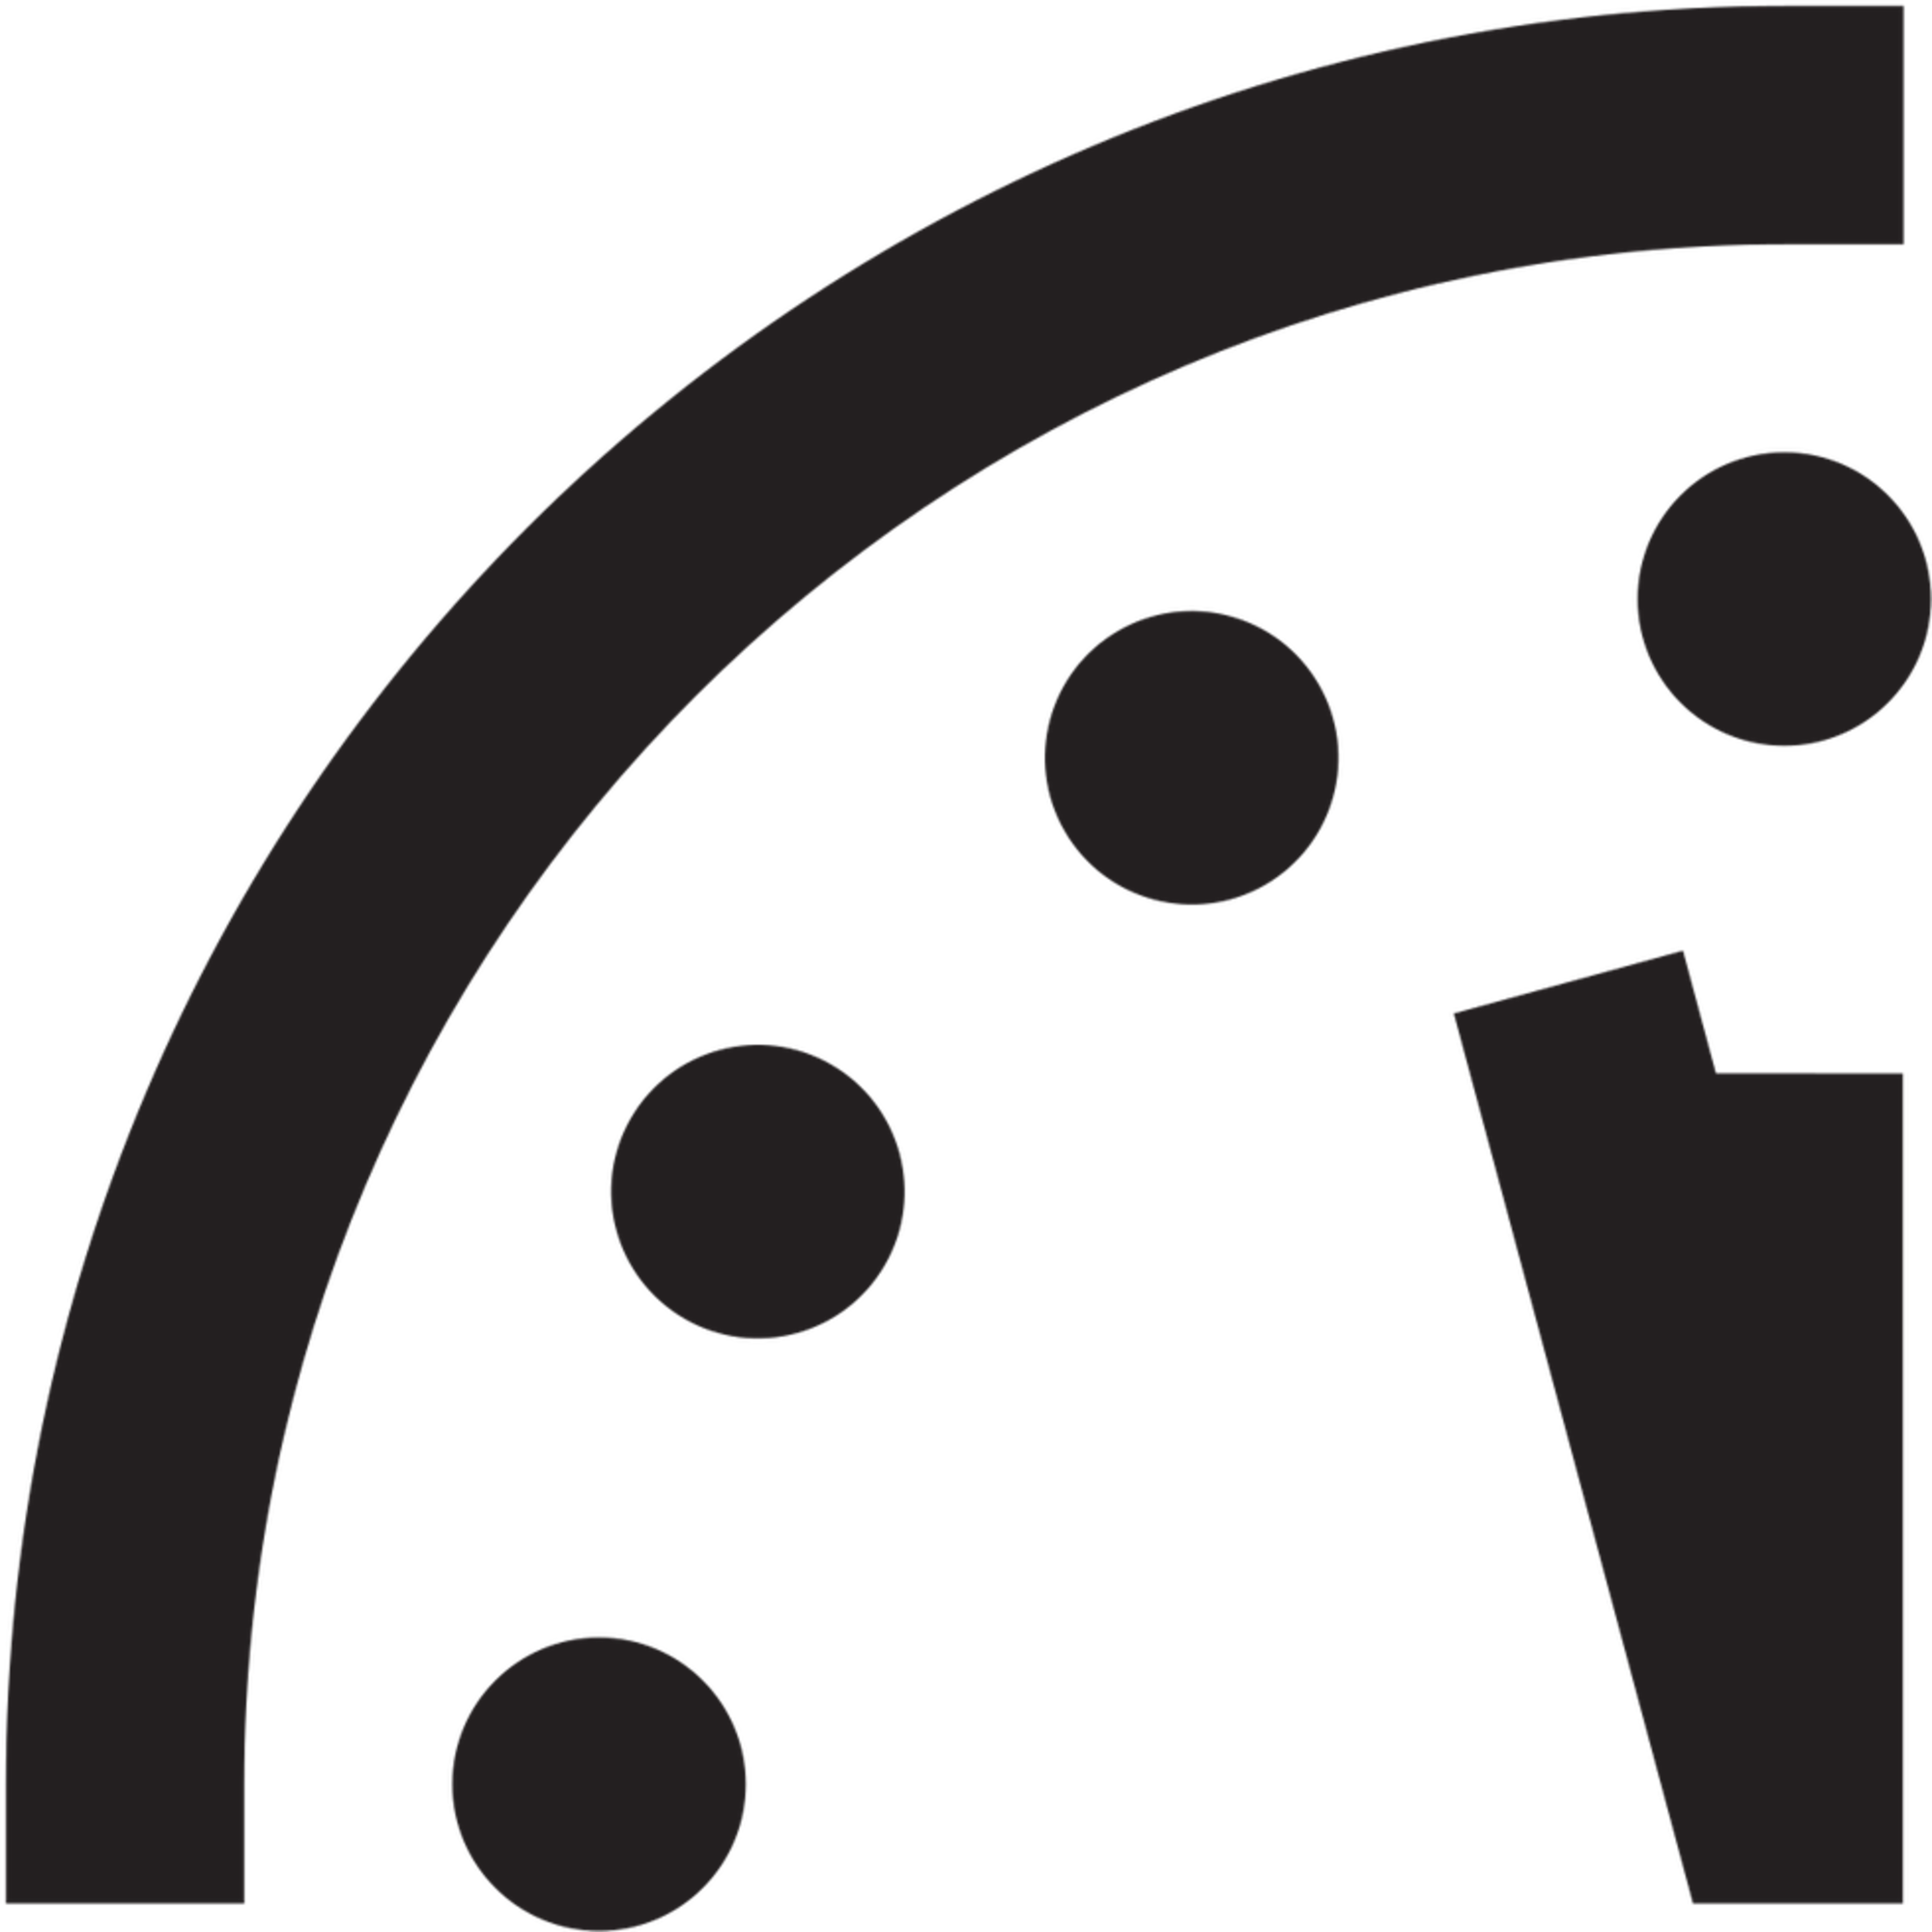 Clock With Arrows At 11.